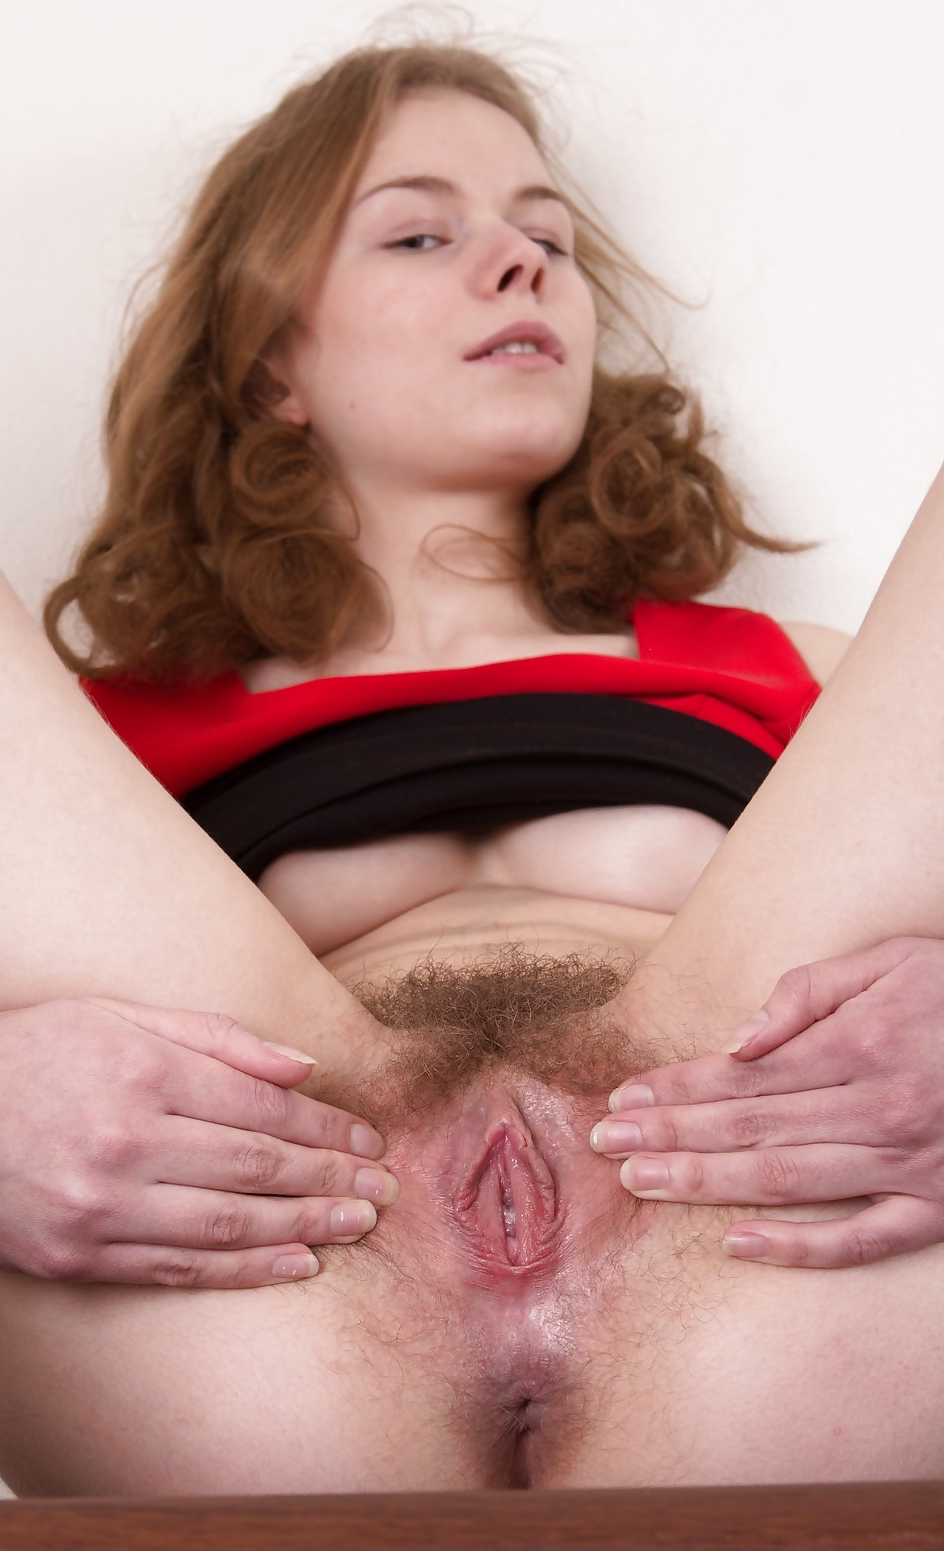 hairy-virgin-cunts-pics-amateur-pantie-pictures